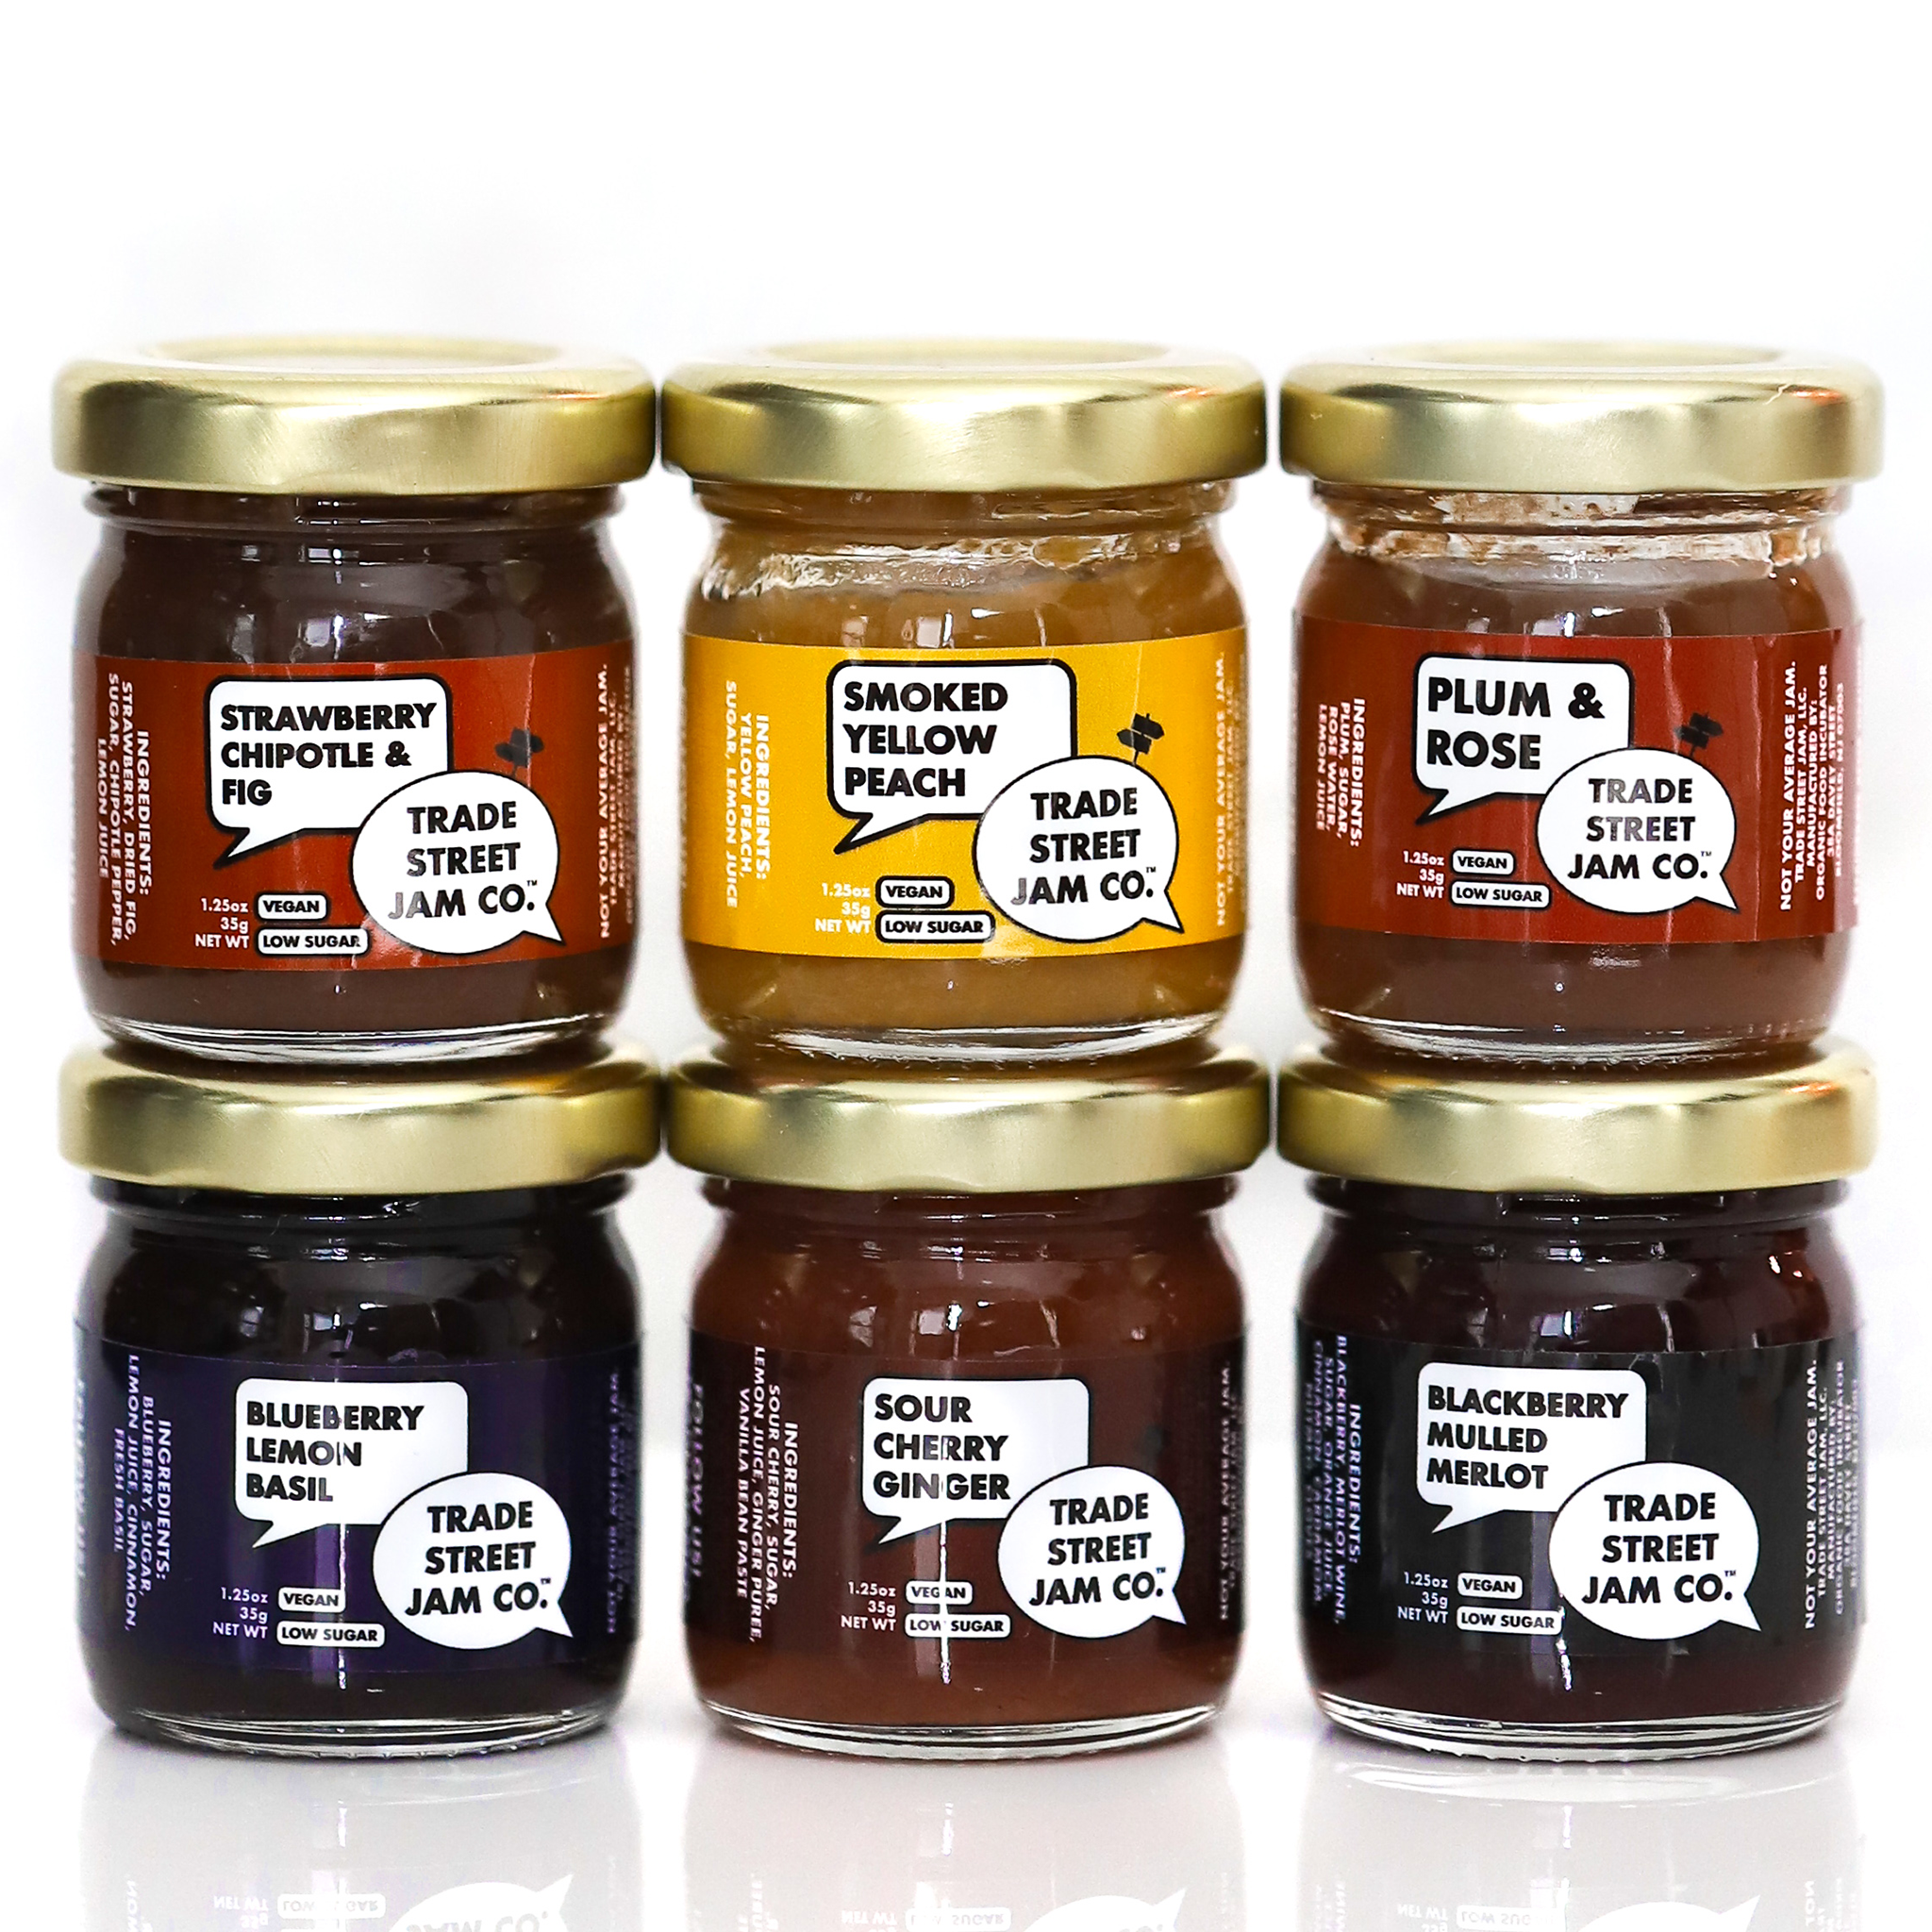 The jam jars with the respective titles of each jam on the front with the bran's logo